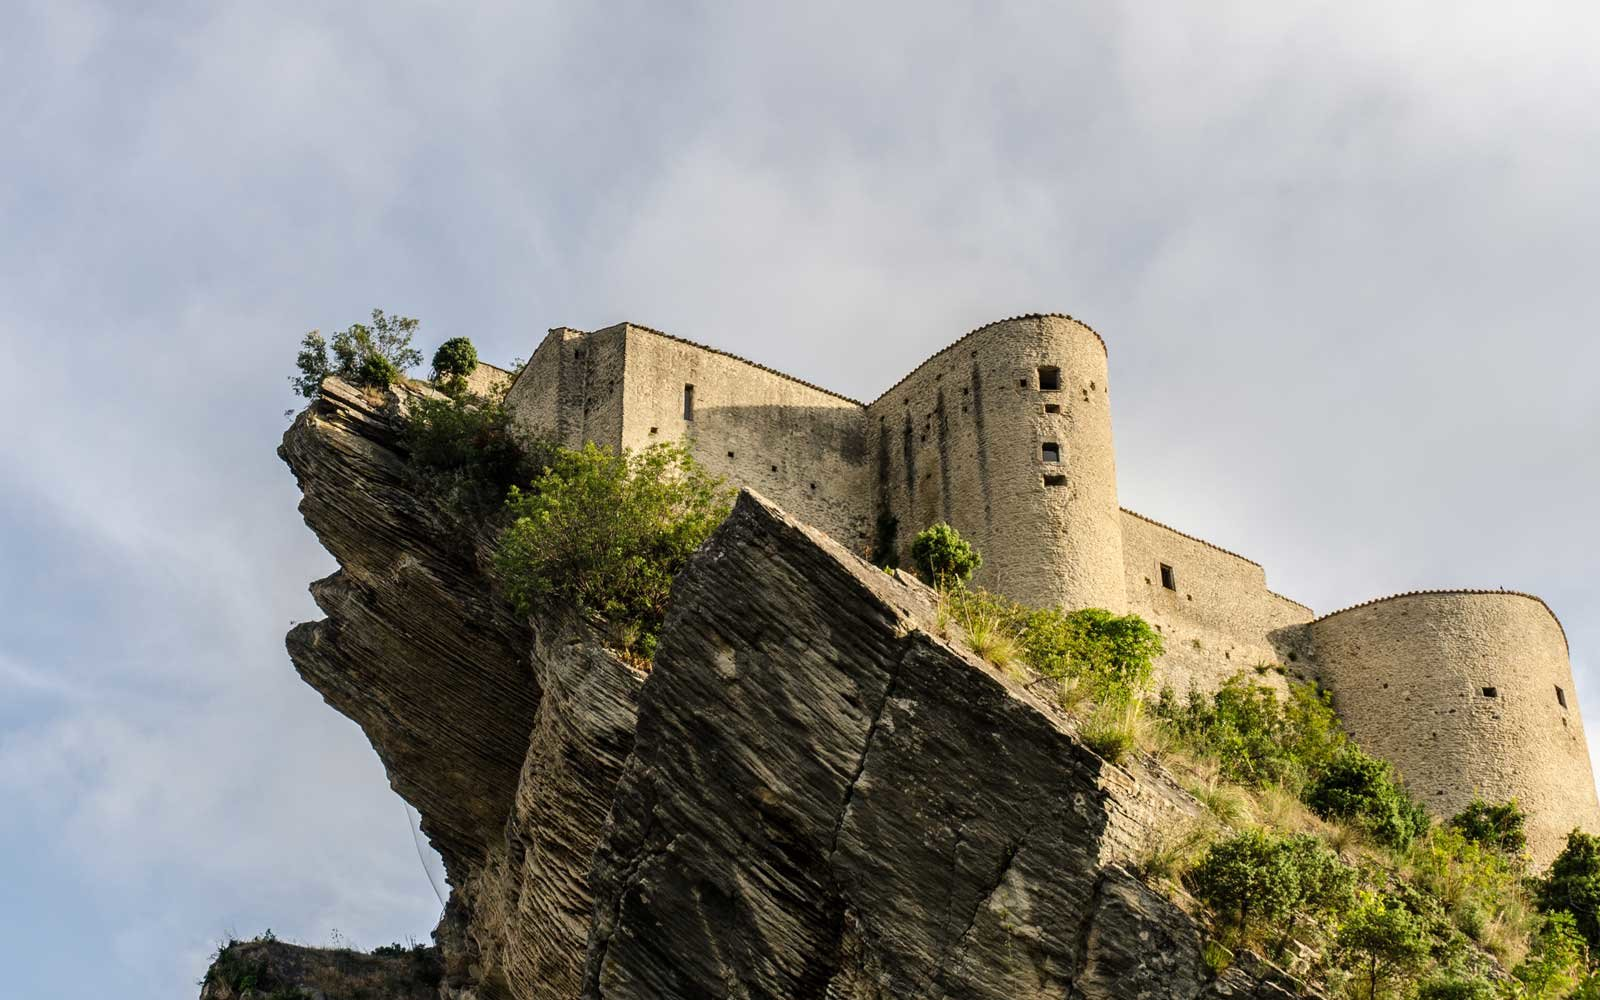 Castle of Roccascalegna, Italy